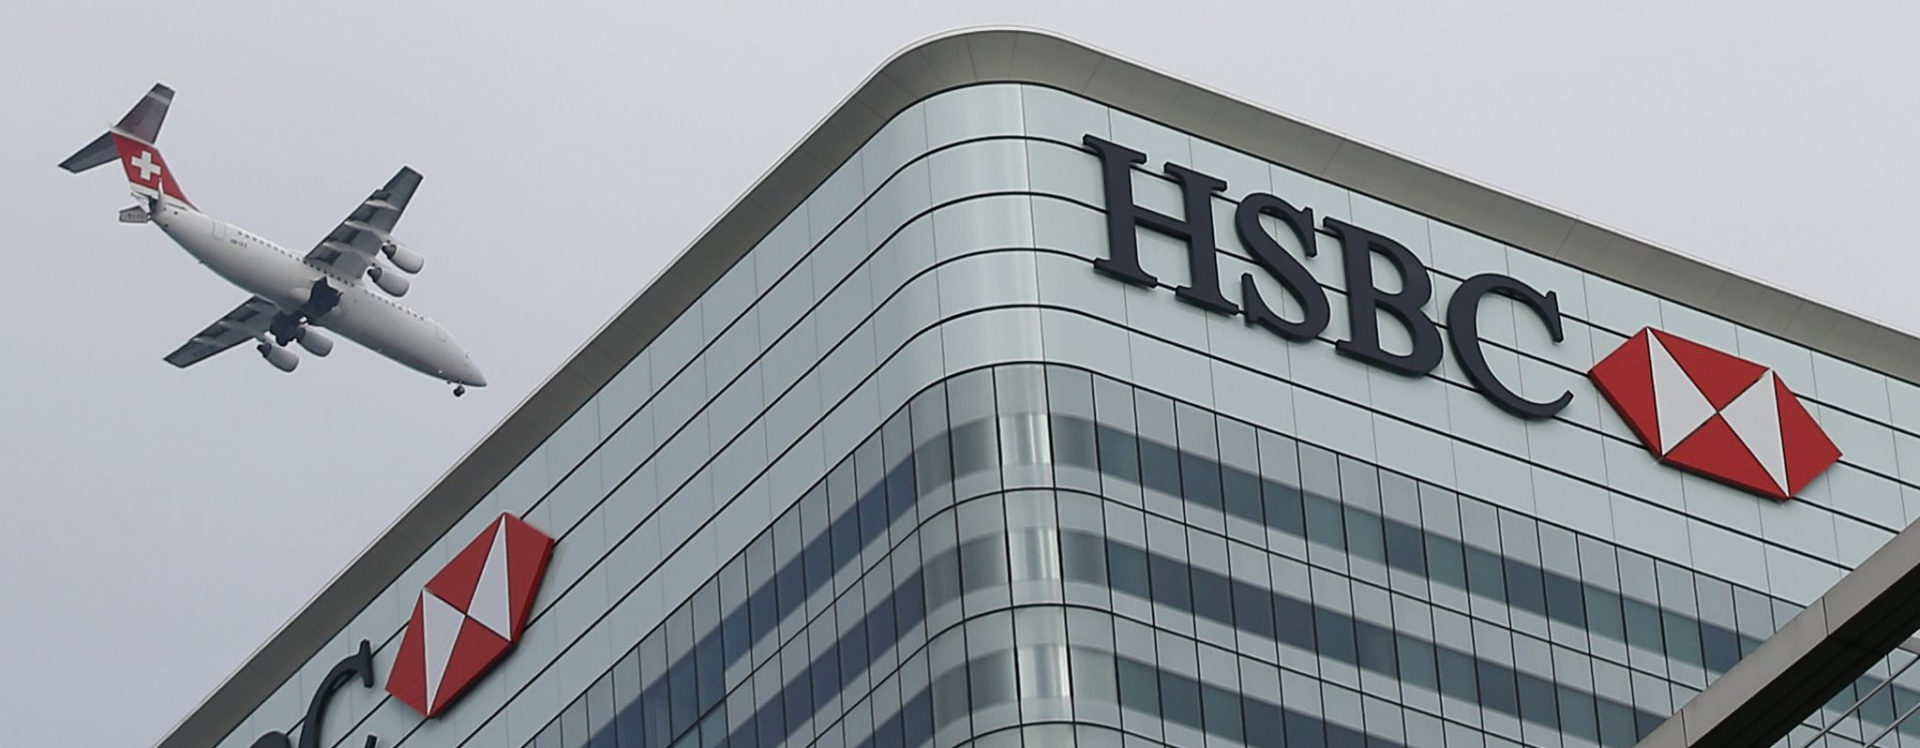 HSBC Bank to Launch Digital Loaning Platform in 2019